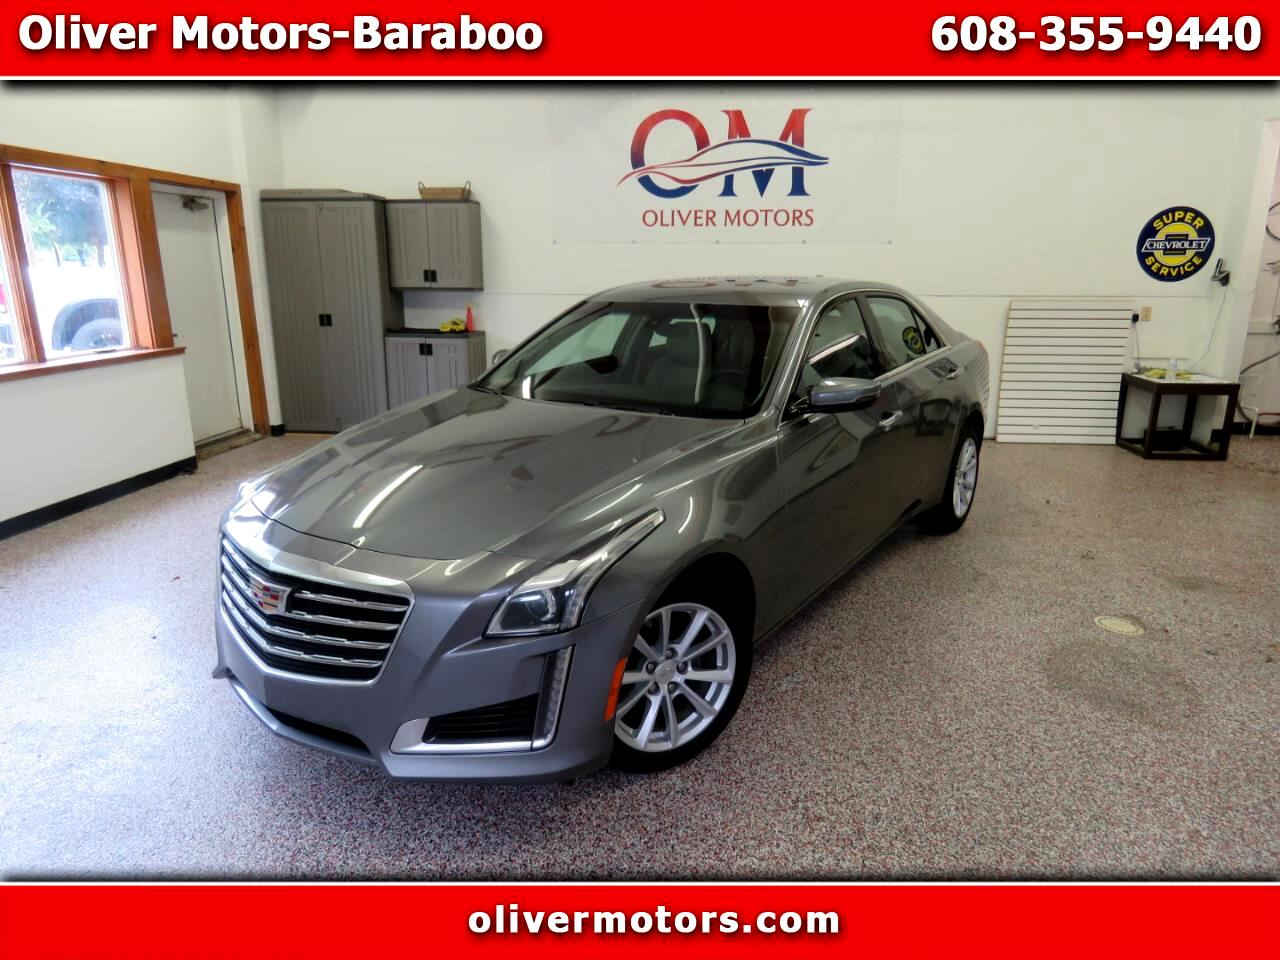 Cadillac CTS Sedan 4dr Sdn 2.0L Turbo AWD 2018